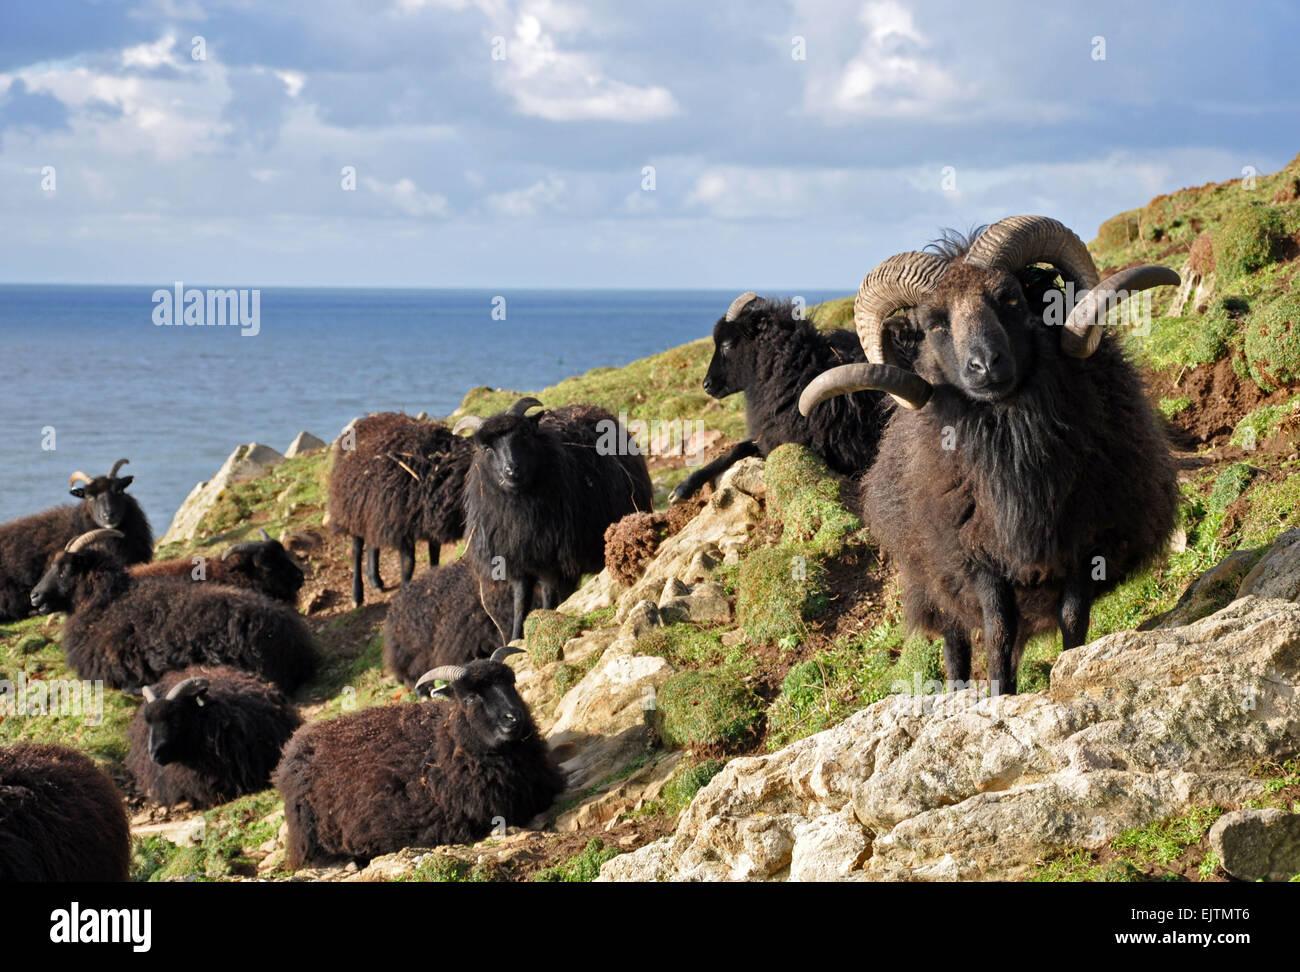 Hebridean sheep, Known as a hardy breed this animal lives on the wild slopes at Baggy Point, Croyde in North Devon, - Stock Image